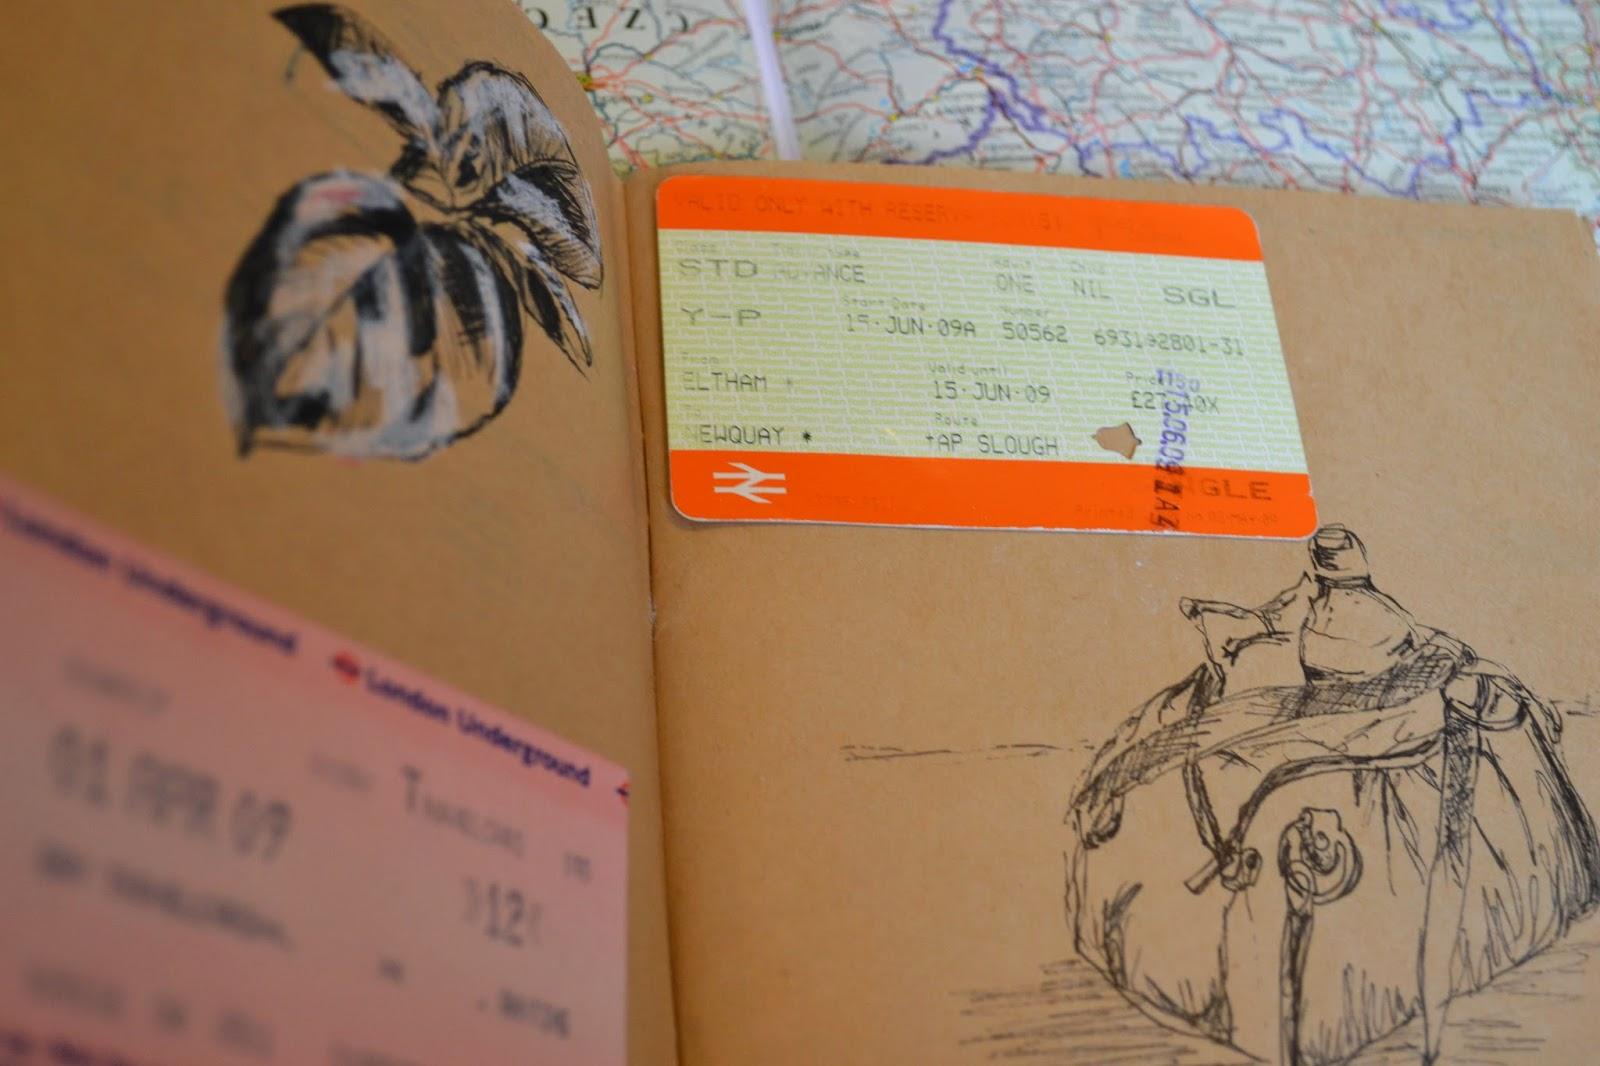 Sketches and train ticket